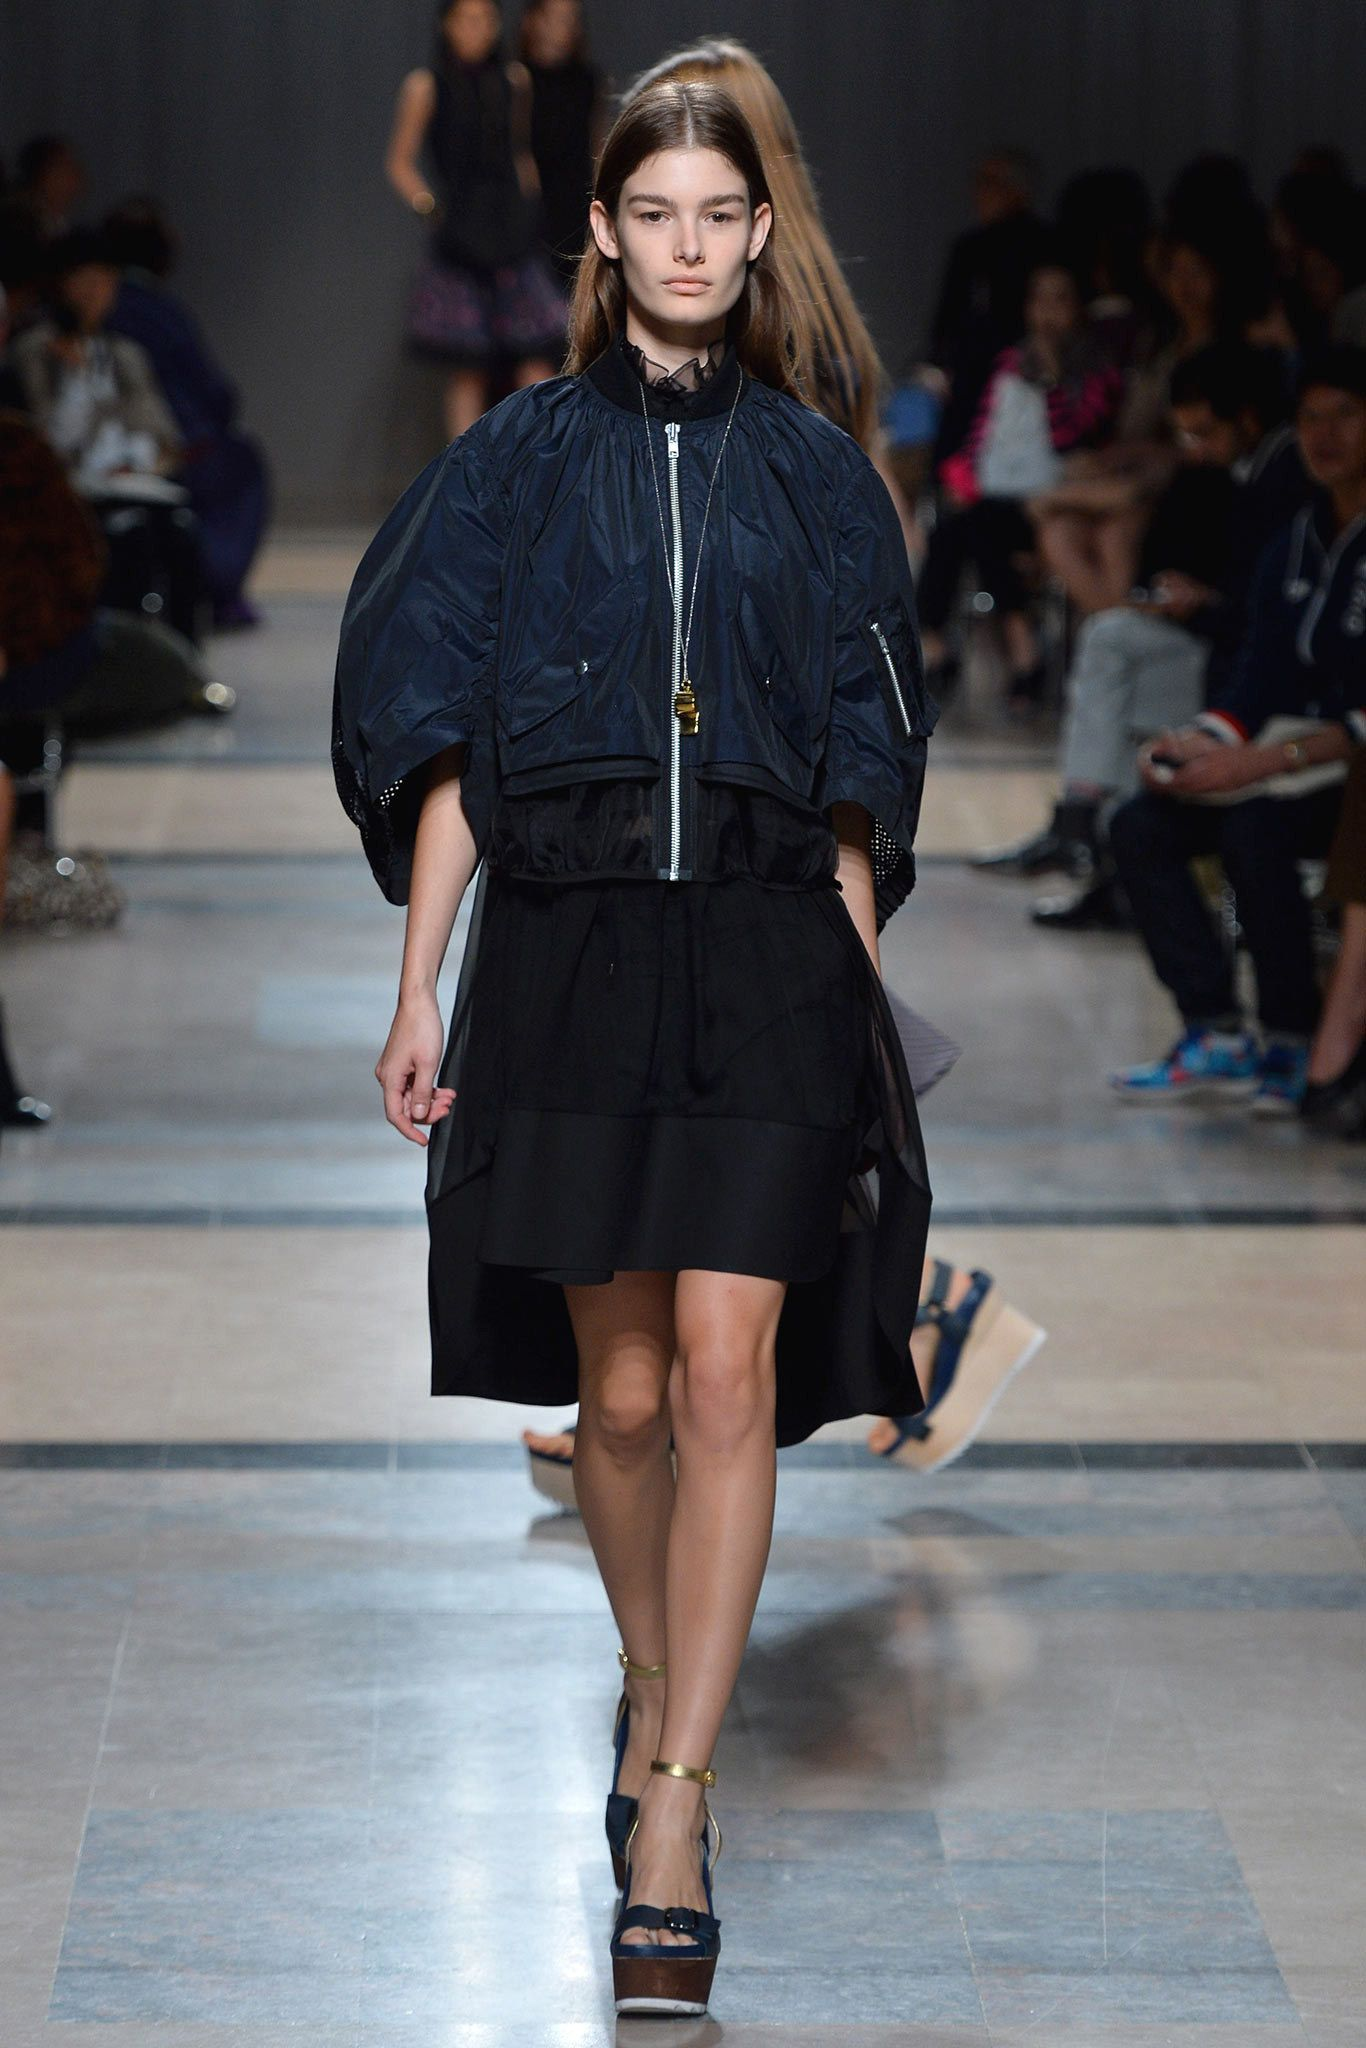 Sacai Spring 2014 Ready-to-Wear Fashion Show - Ophelie Guillermand (Women)